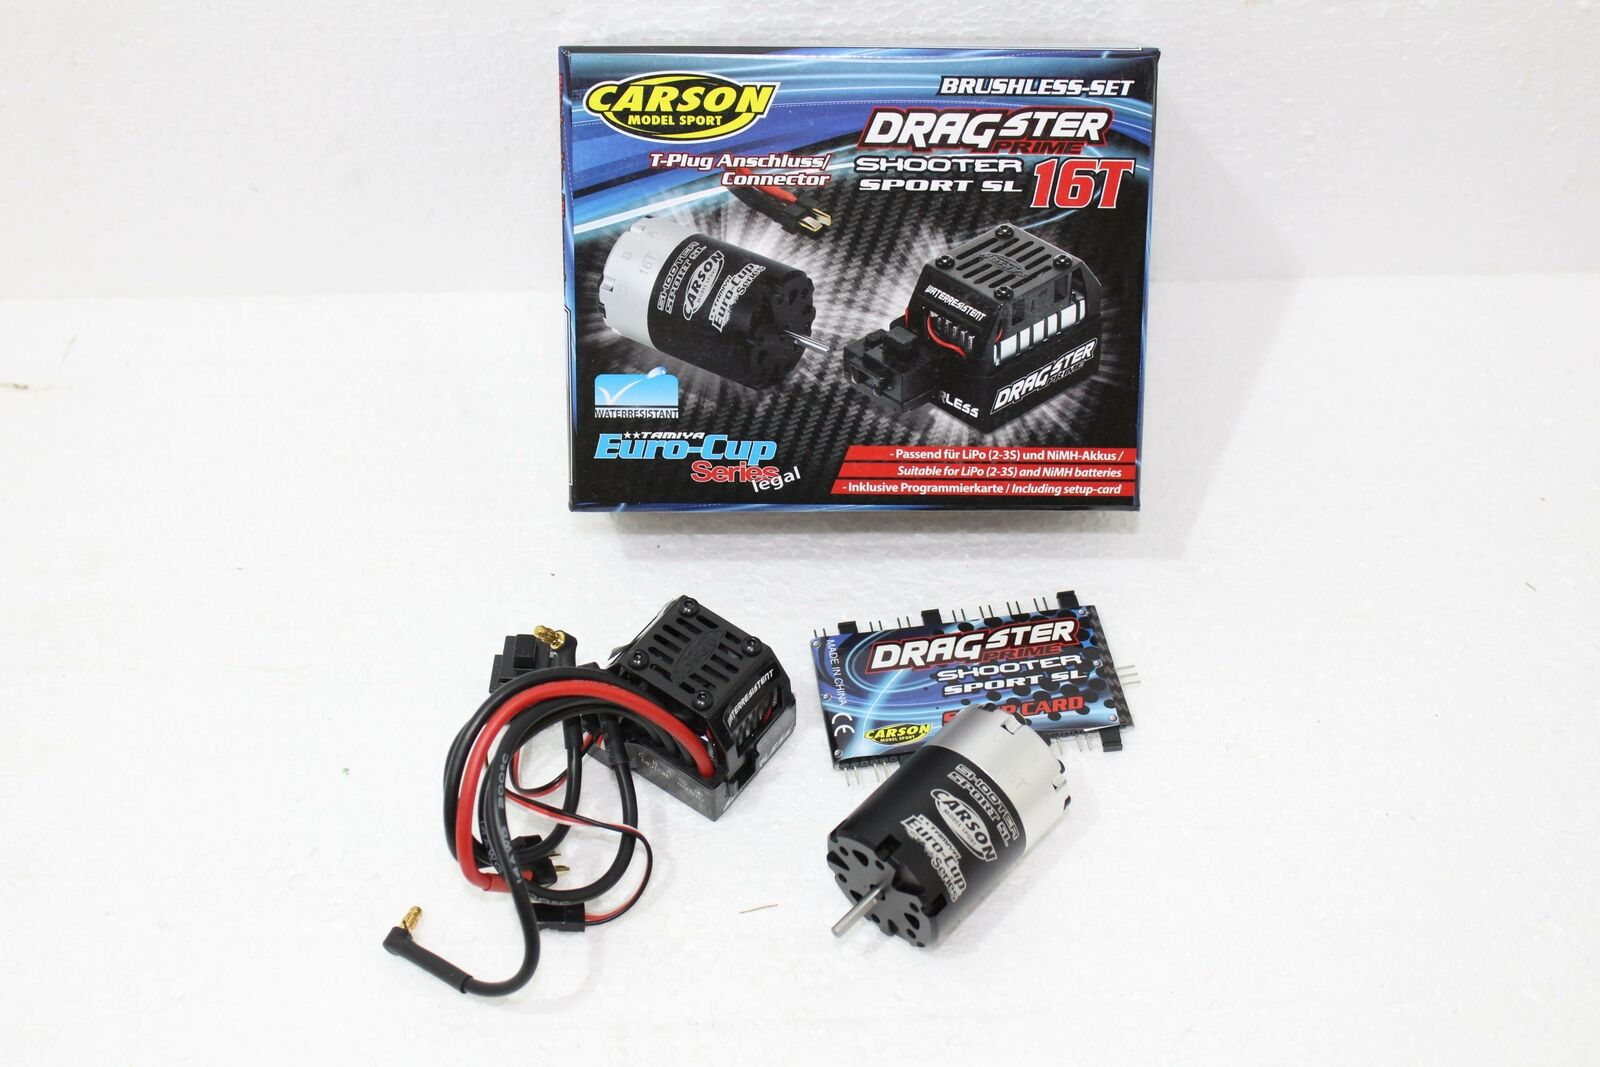 Carson 500906165 Brushless Combo 16t DRAGSTER Prime Water Resistant